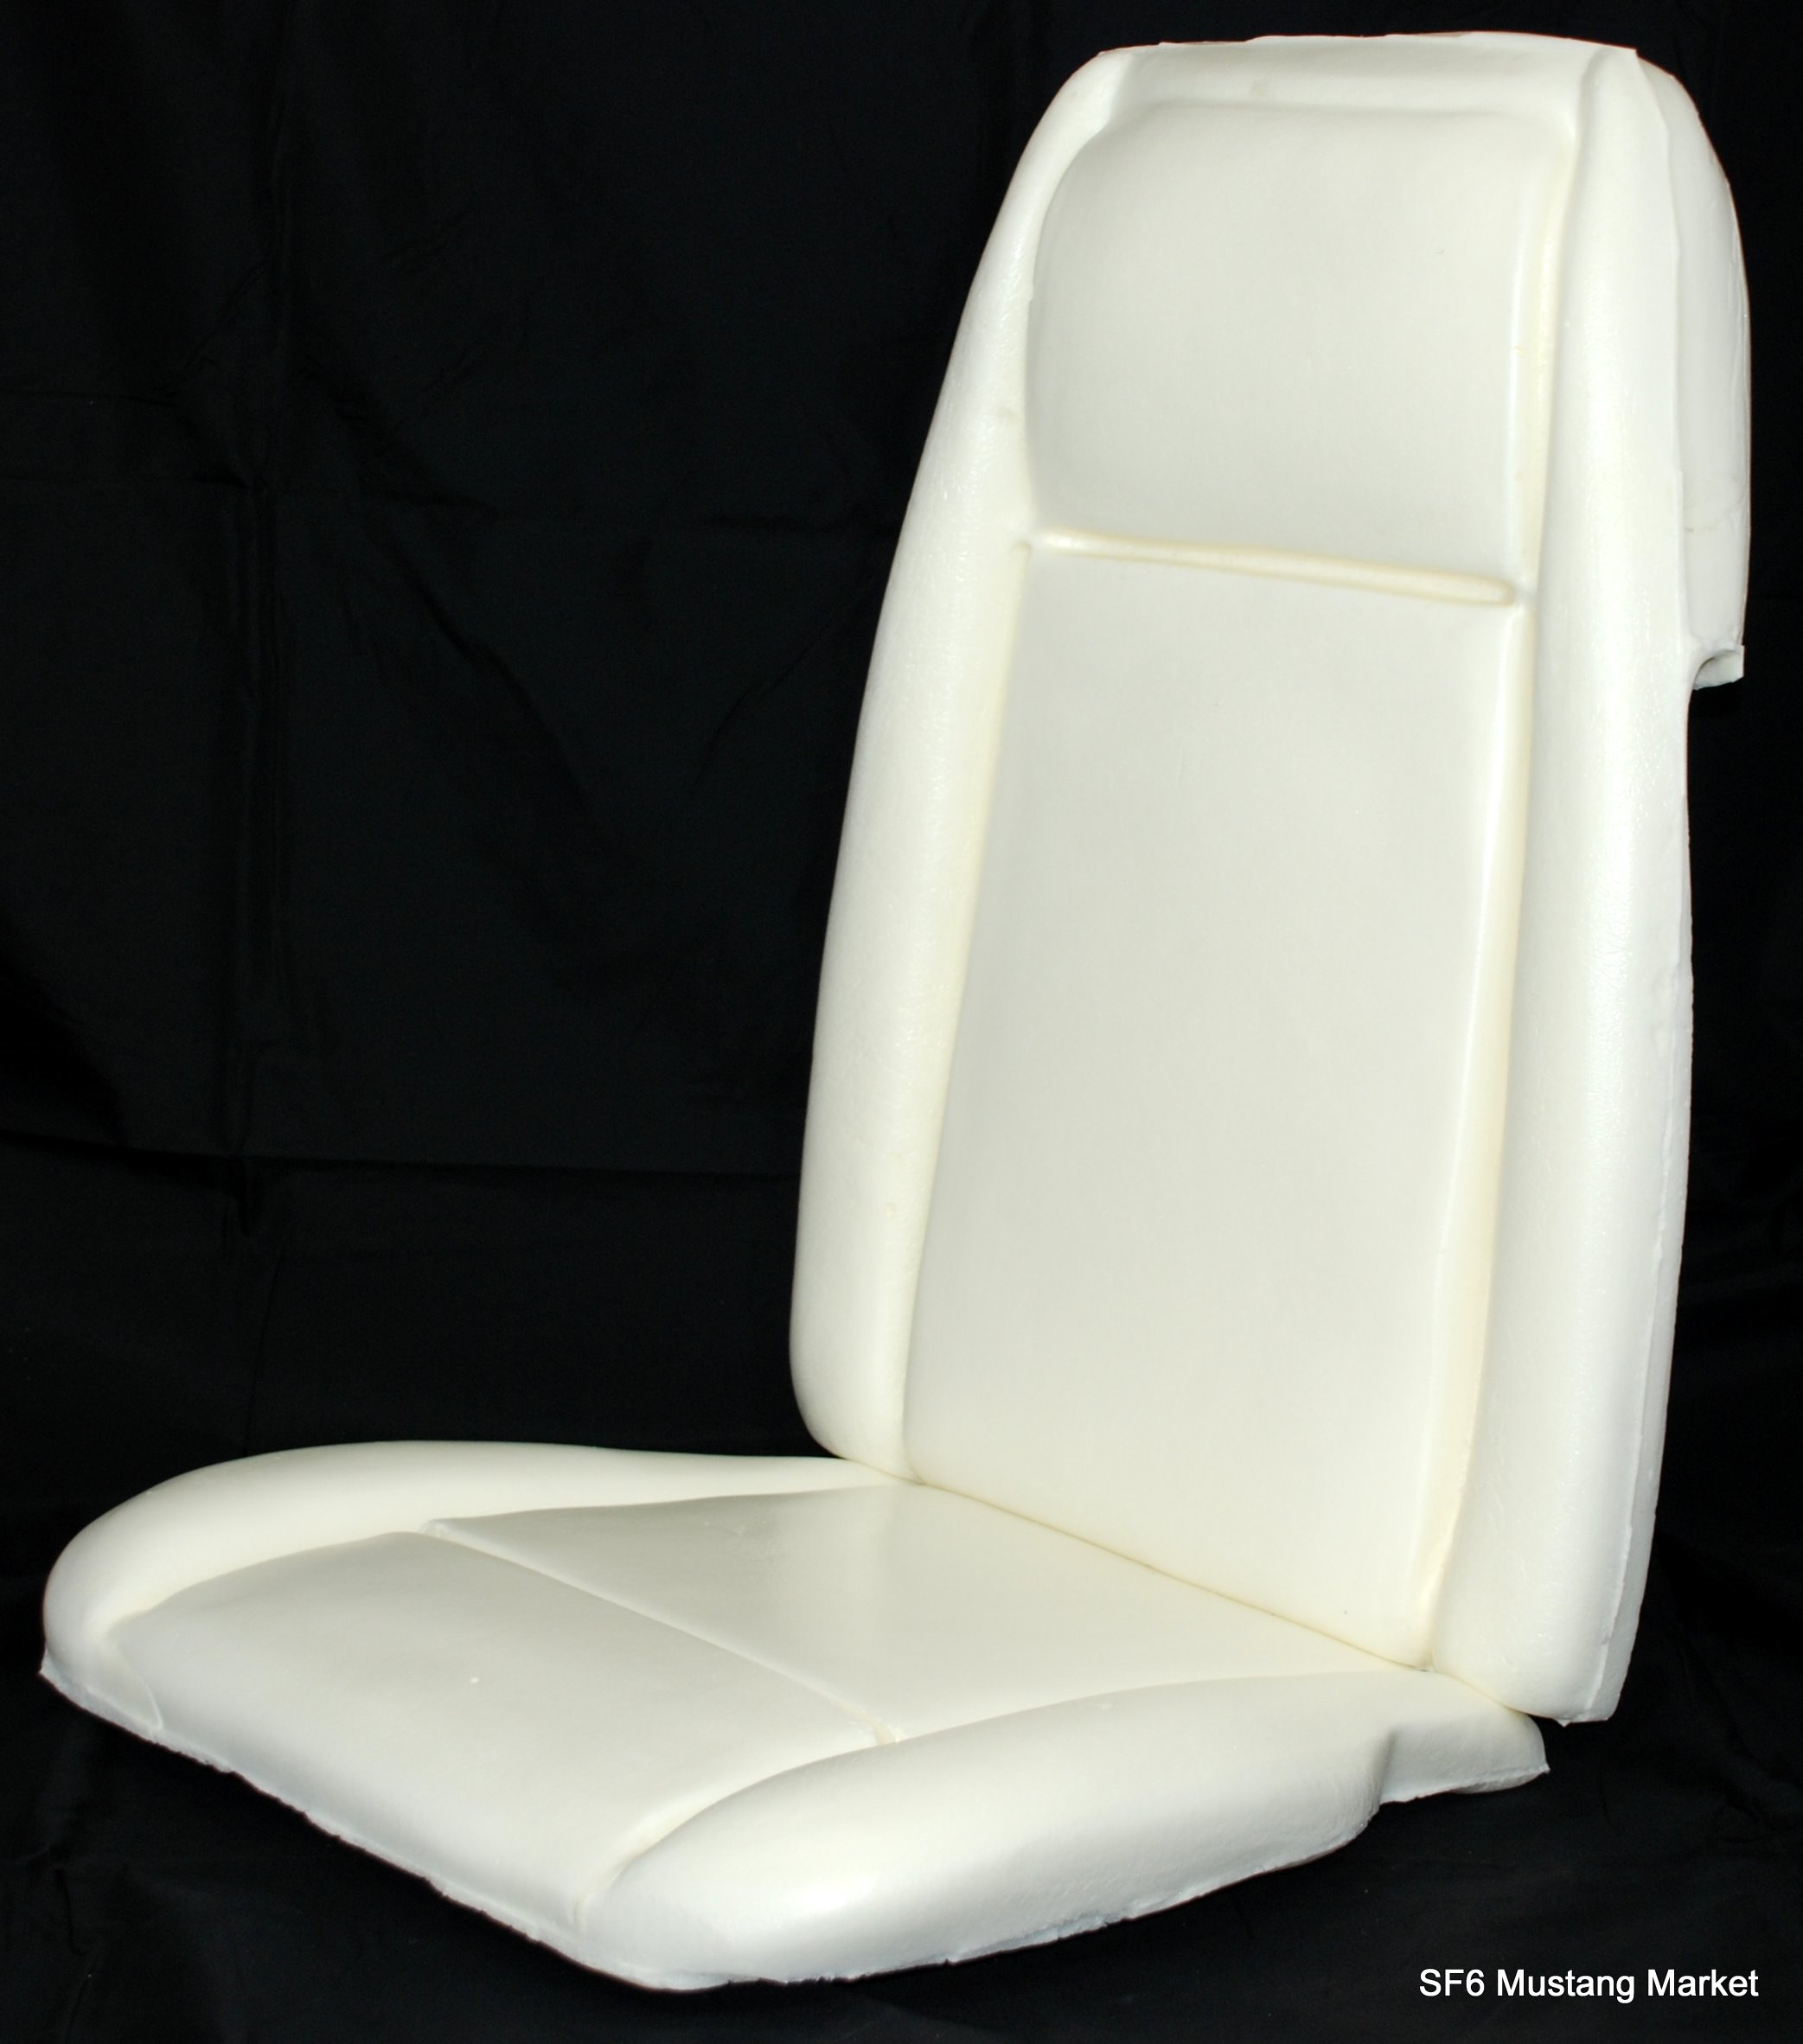 1971-73 Mustang Seat foam All models made by Mustang Market